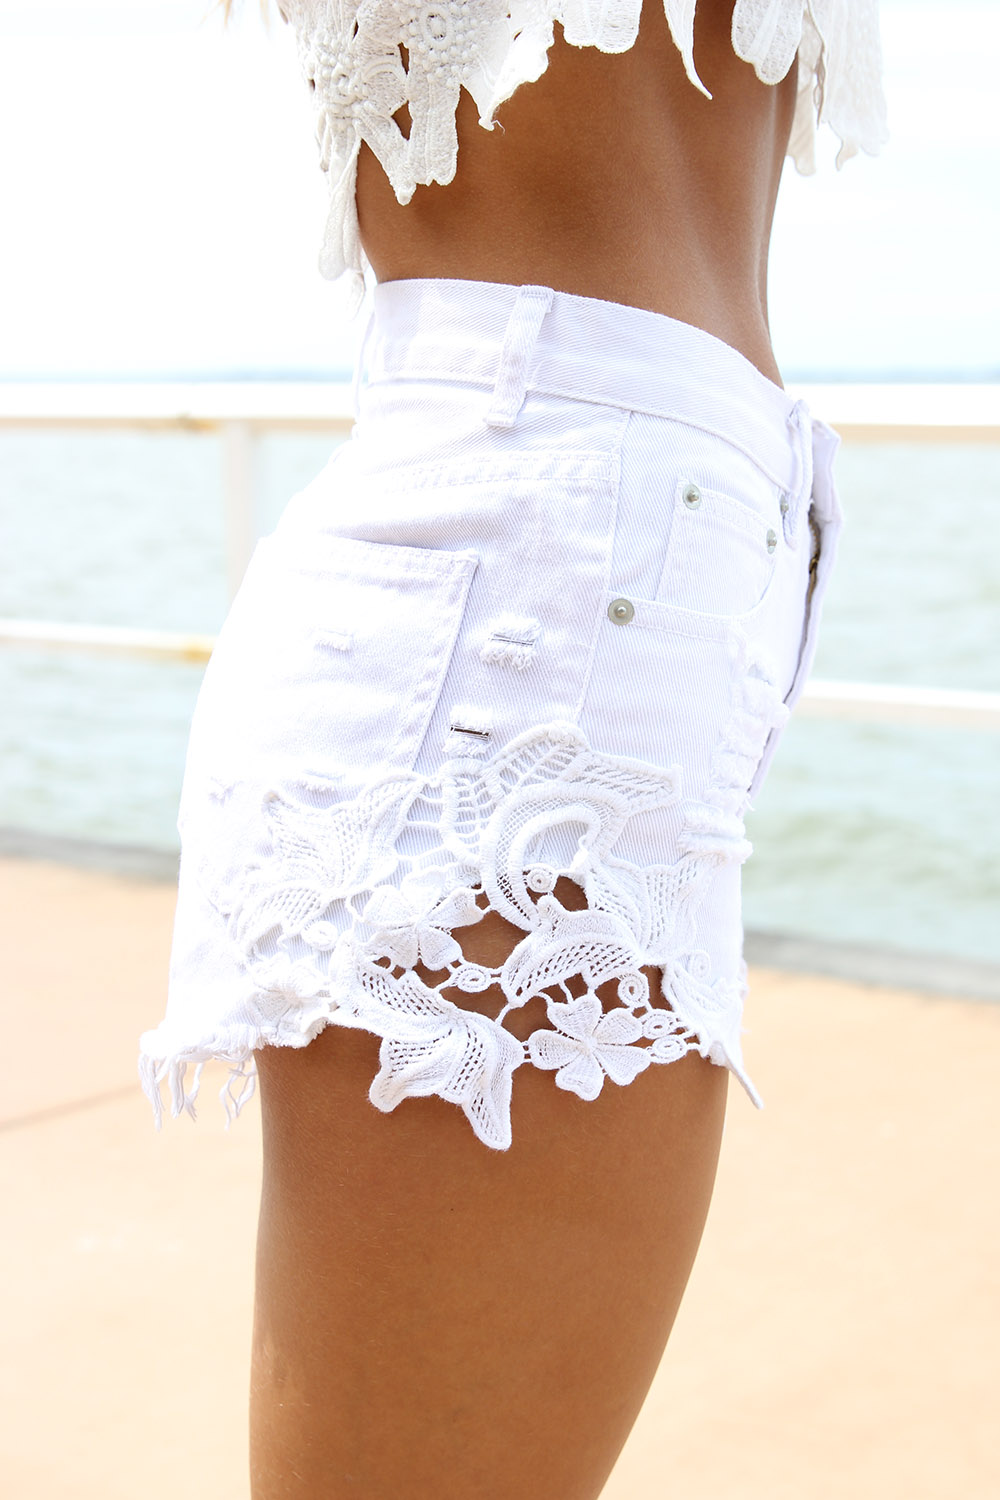 Denim short in white Item A size & fit. City fit—our lowest rise. Sits just above hip. 4